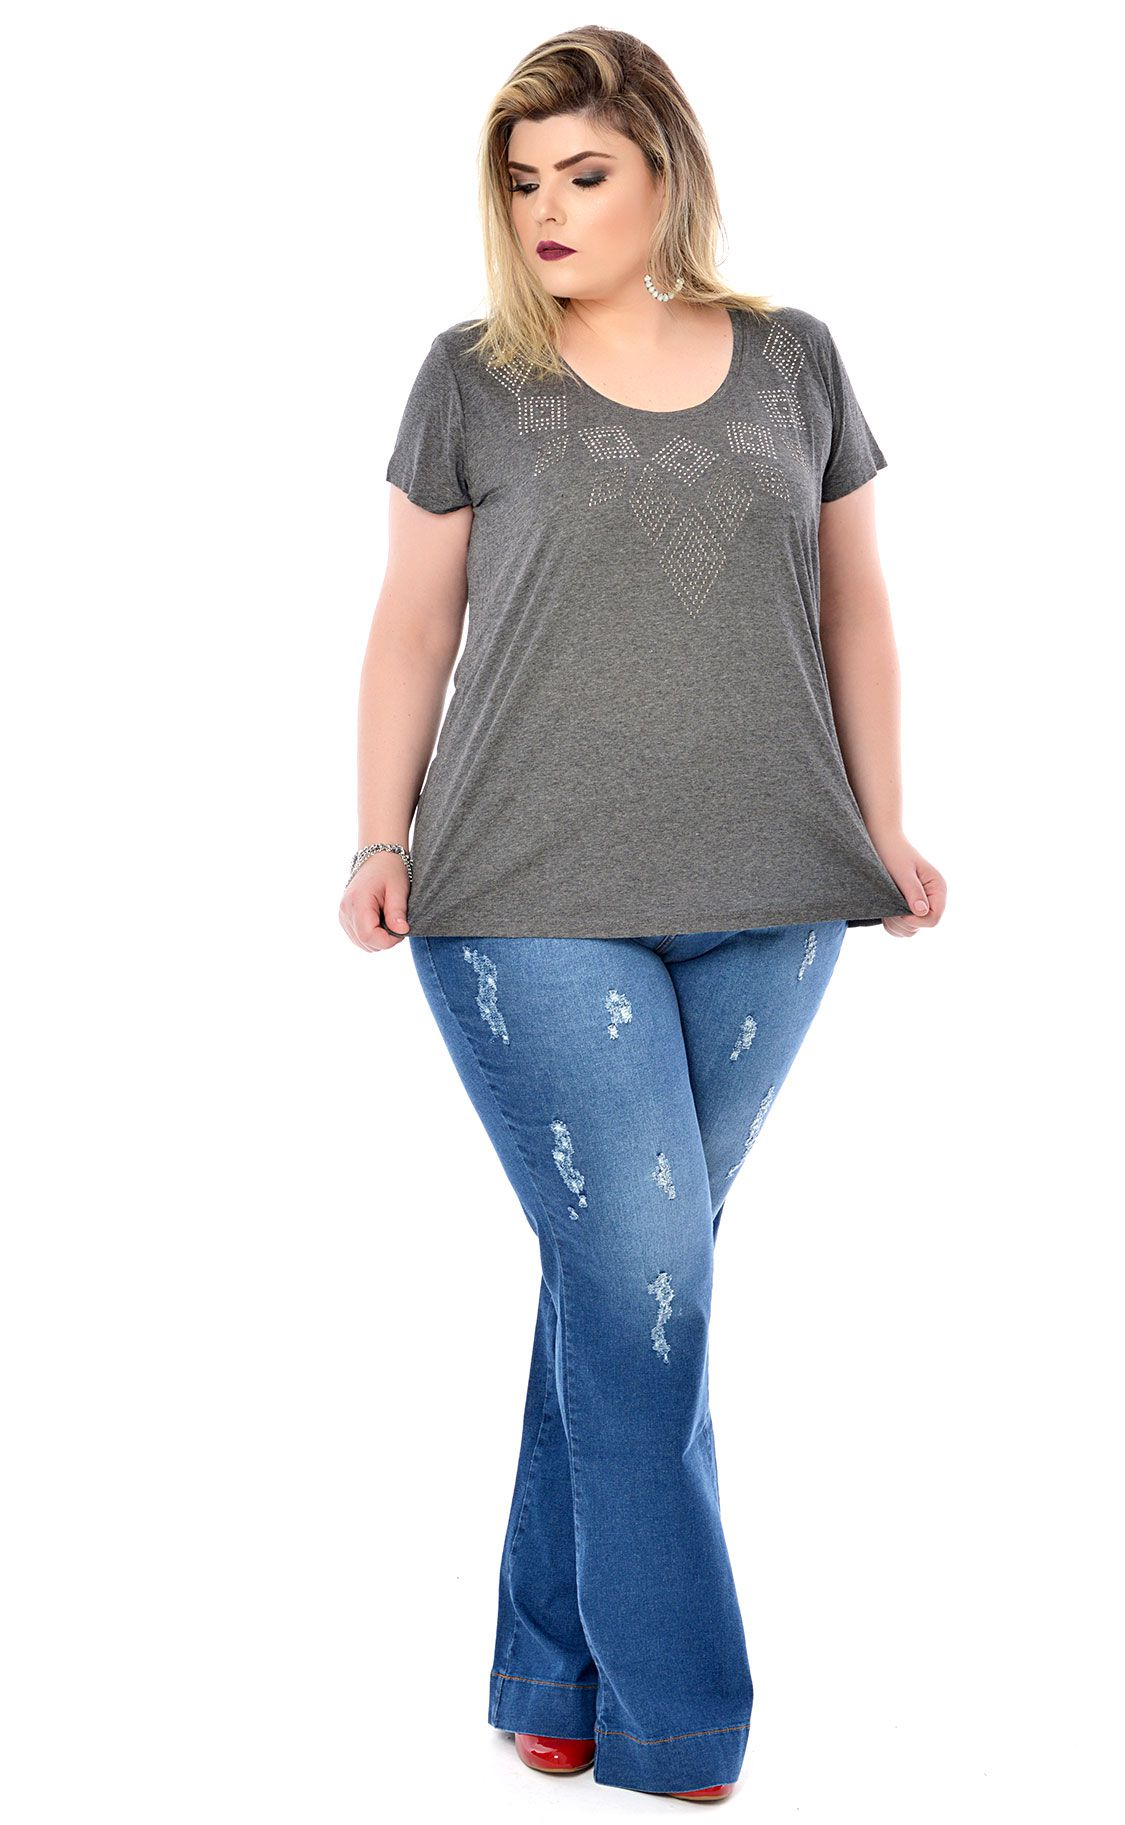 Camiseta Plus Size Hotfix